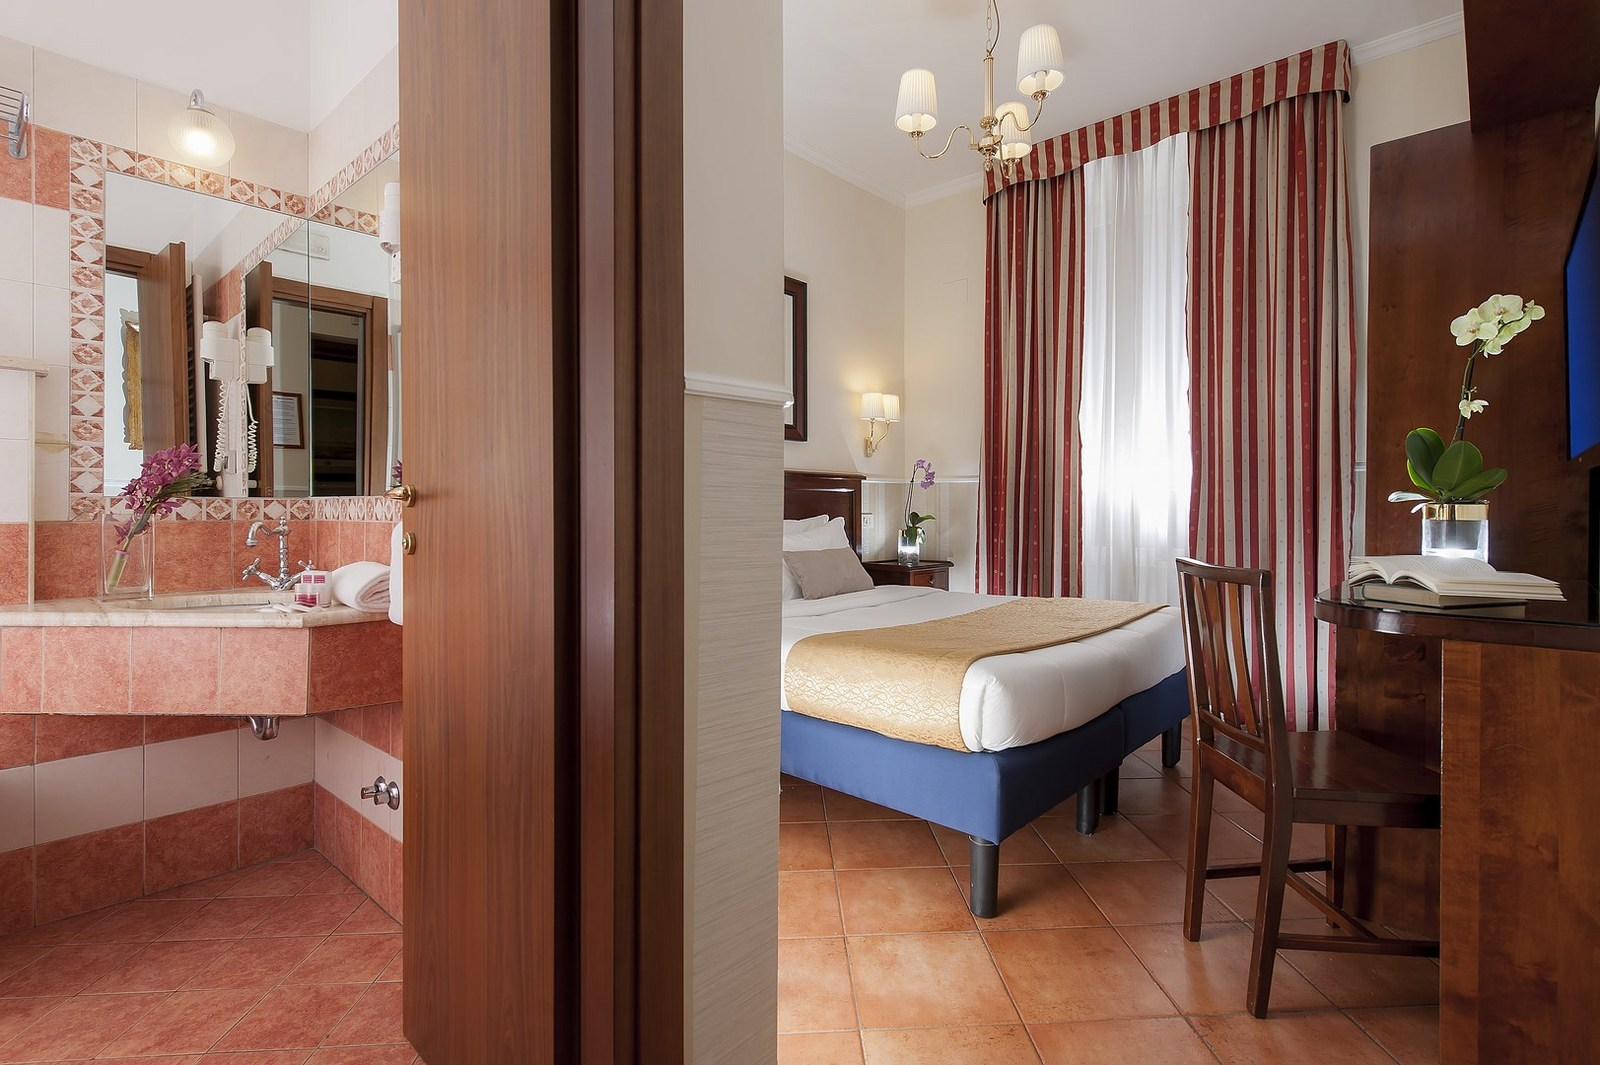 <a href='http://www.luccihotelrome.com' target='_blank'>www.luccihotelrome.com<br />Hotel Des Artistes Dependance</a>